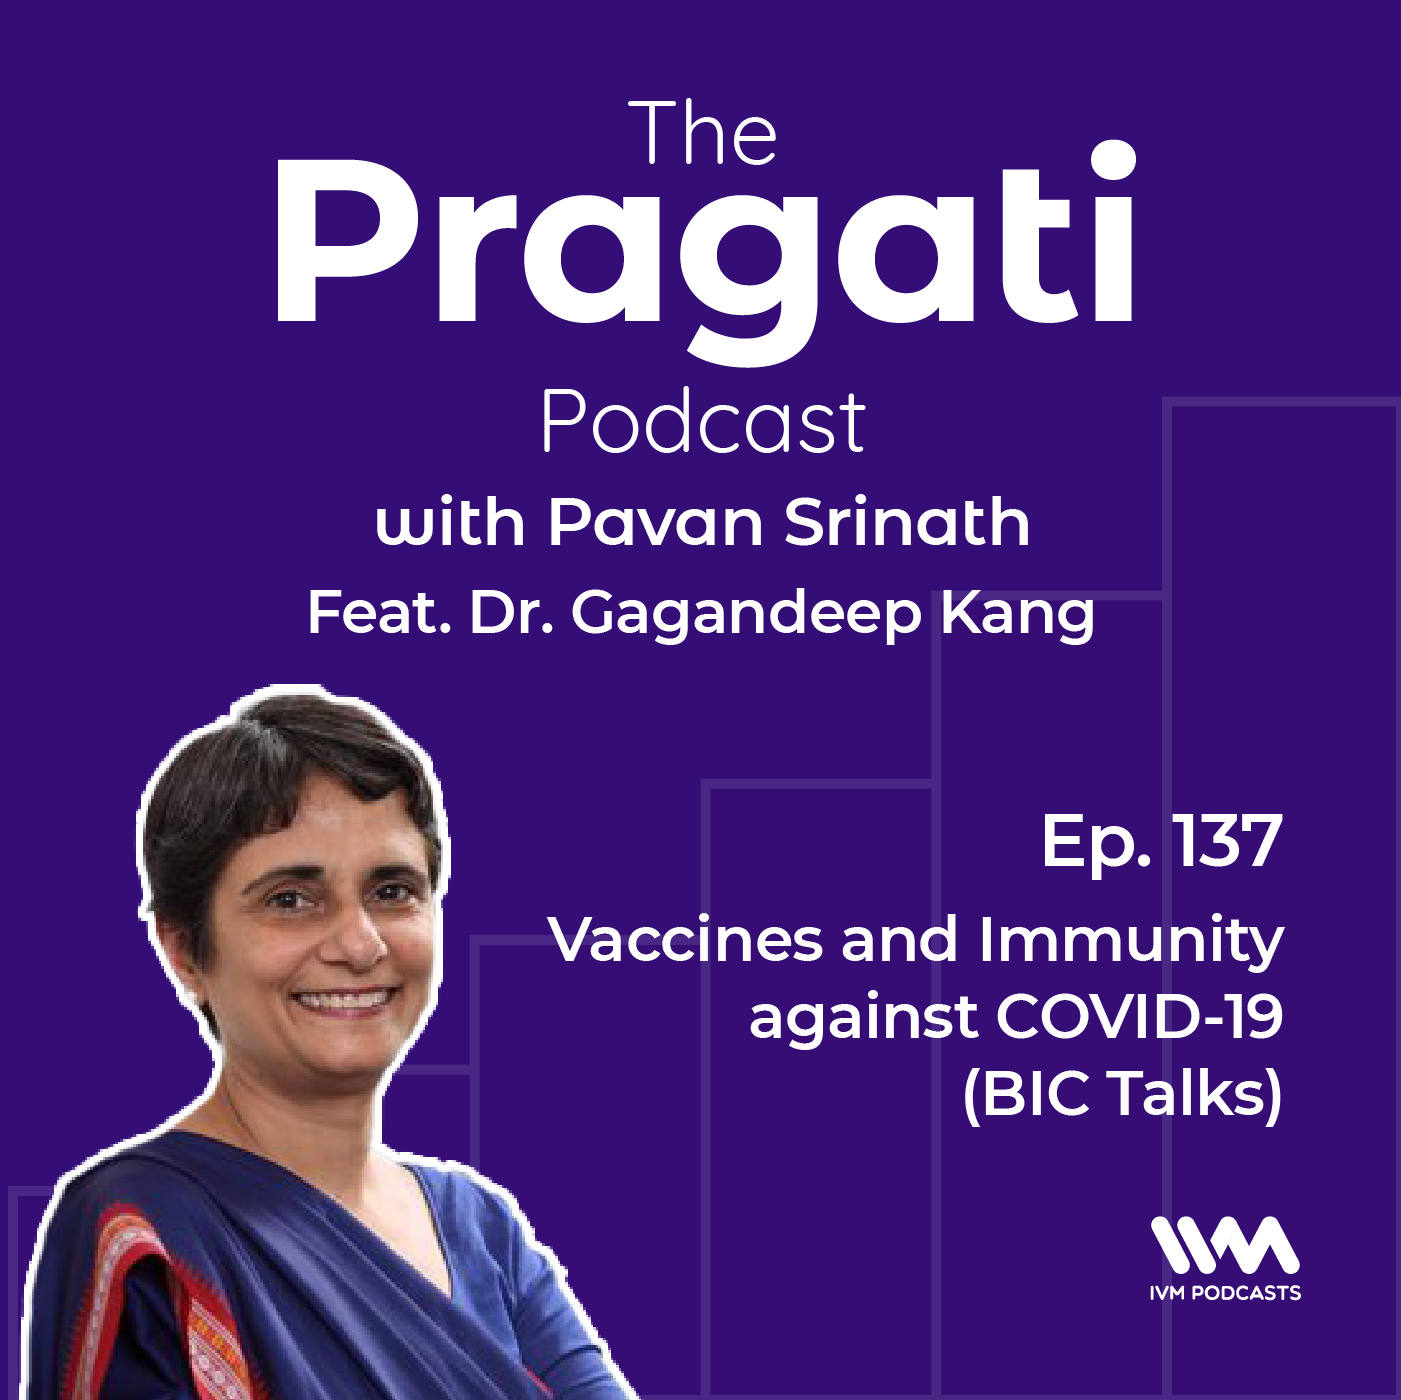 Ep. 137: Vaccines and Immunity against COVID-19 (BIC Talks)